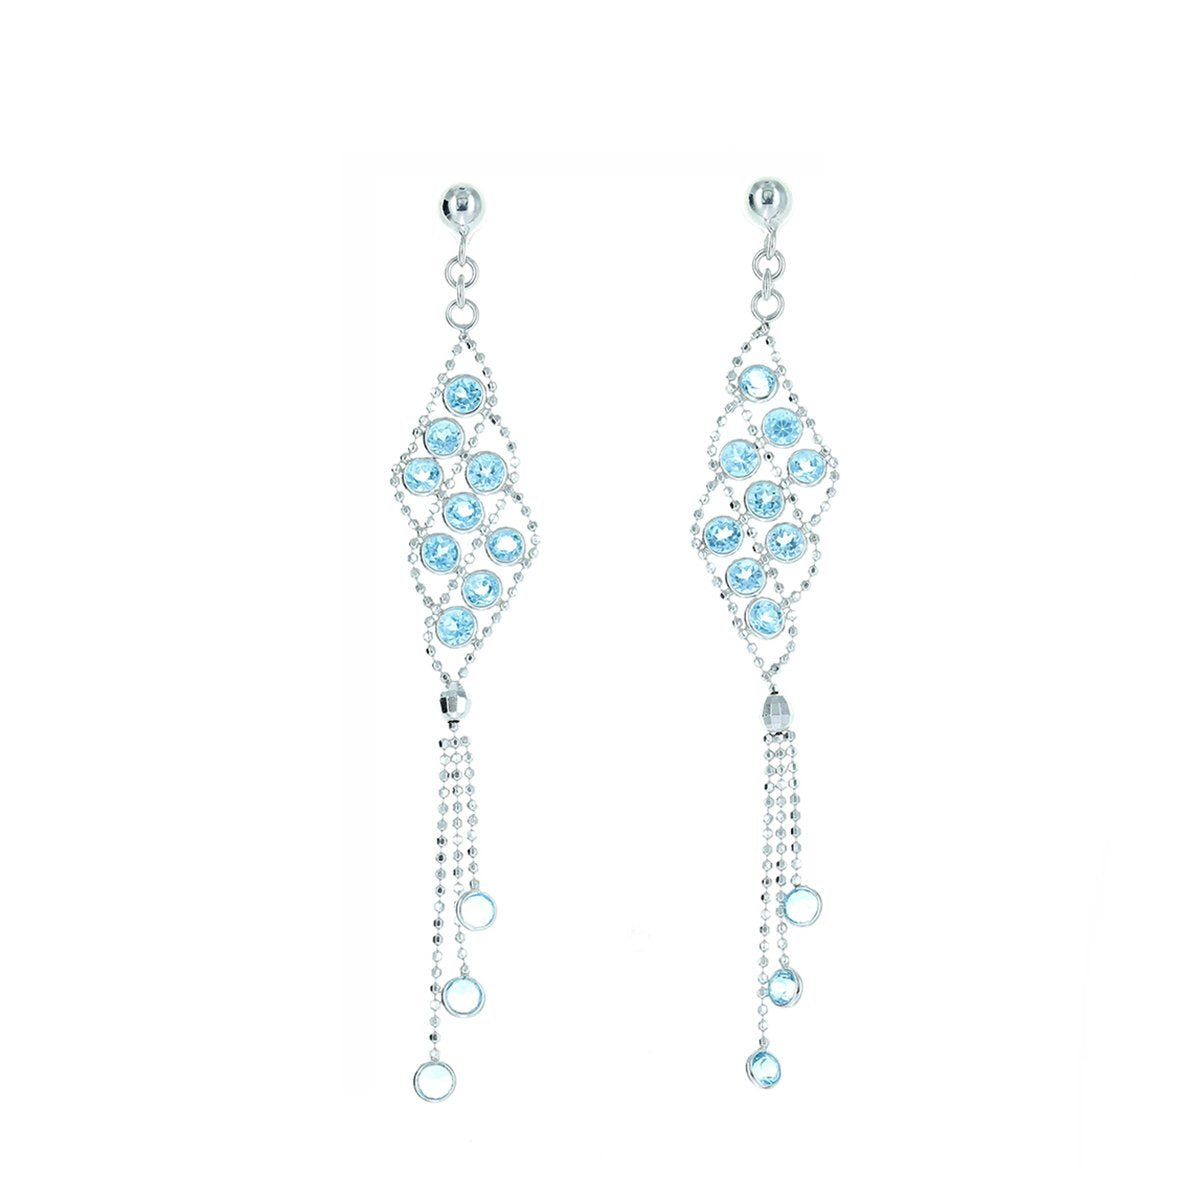 Silk Collection Dangle Earrings with Swiss Blue Topaz Accents